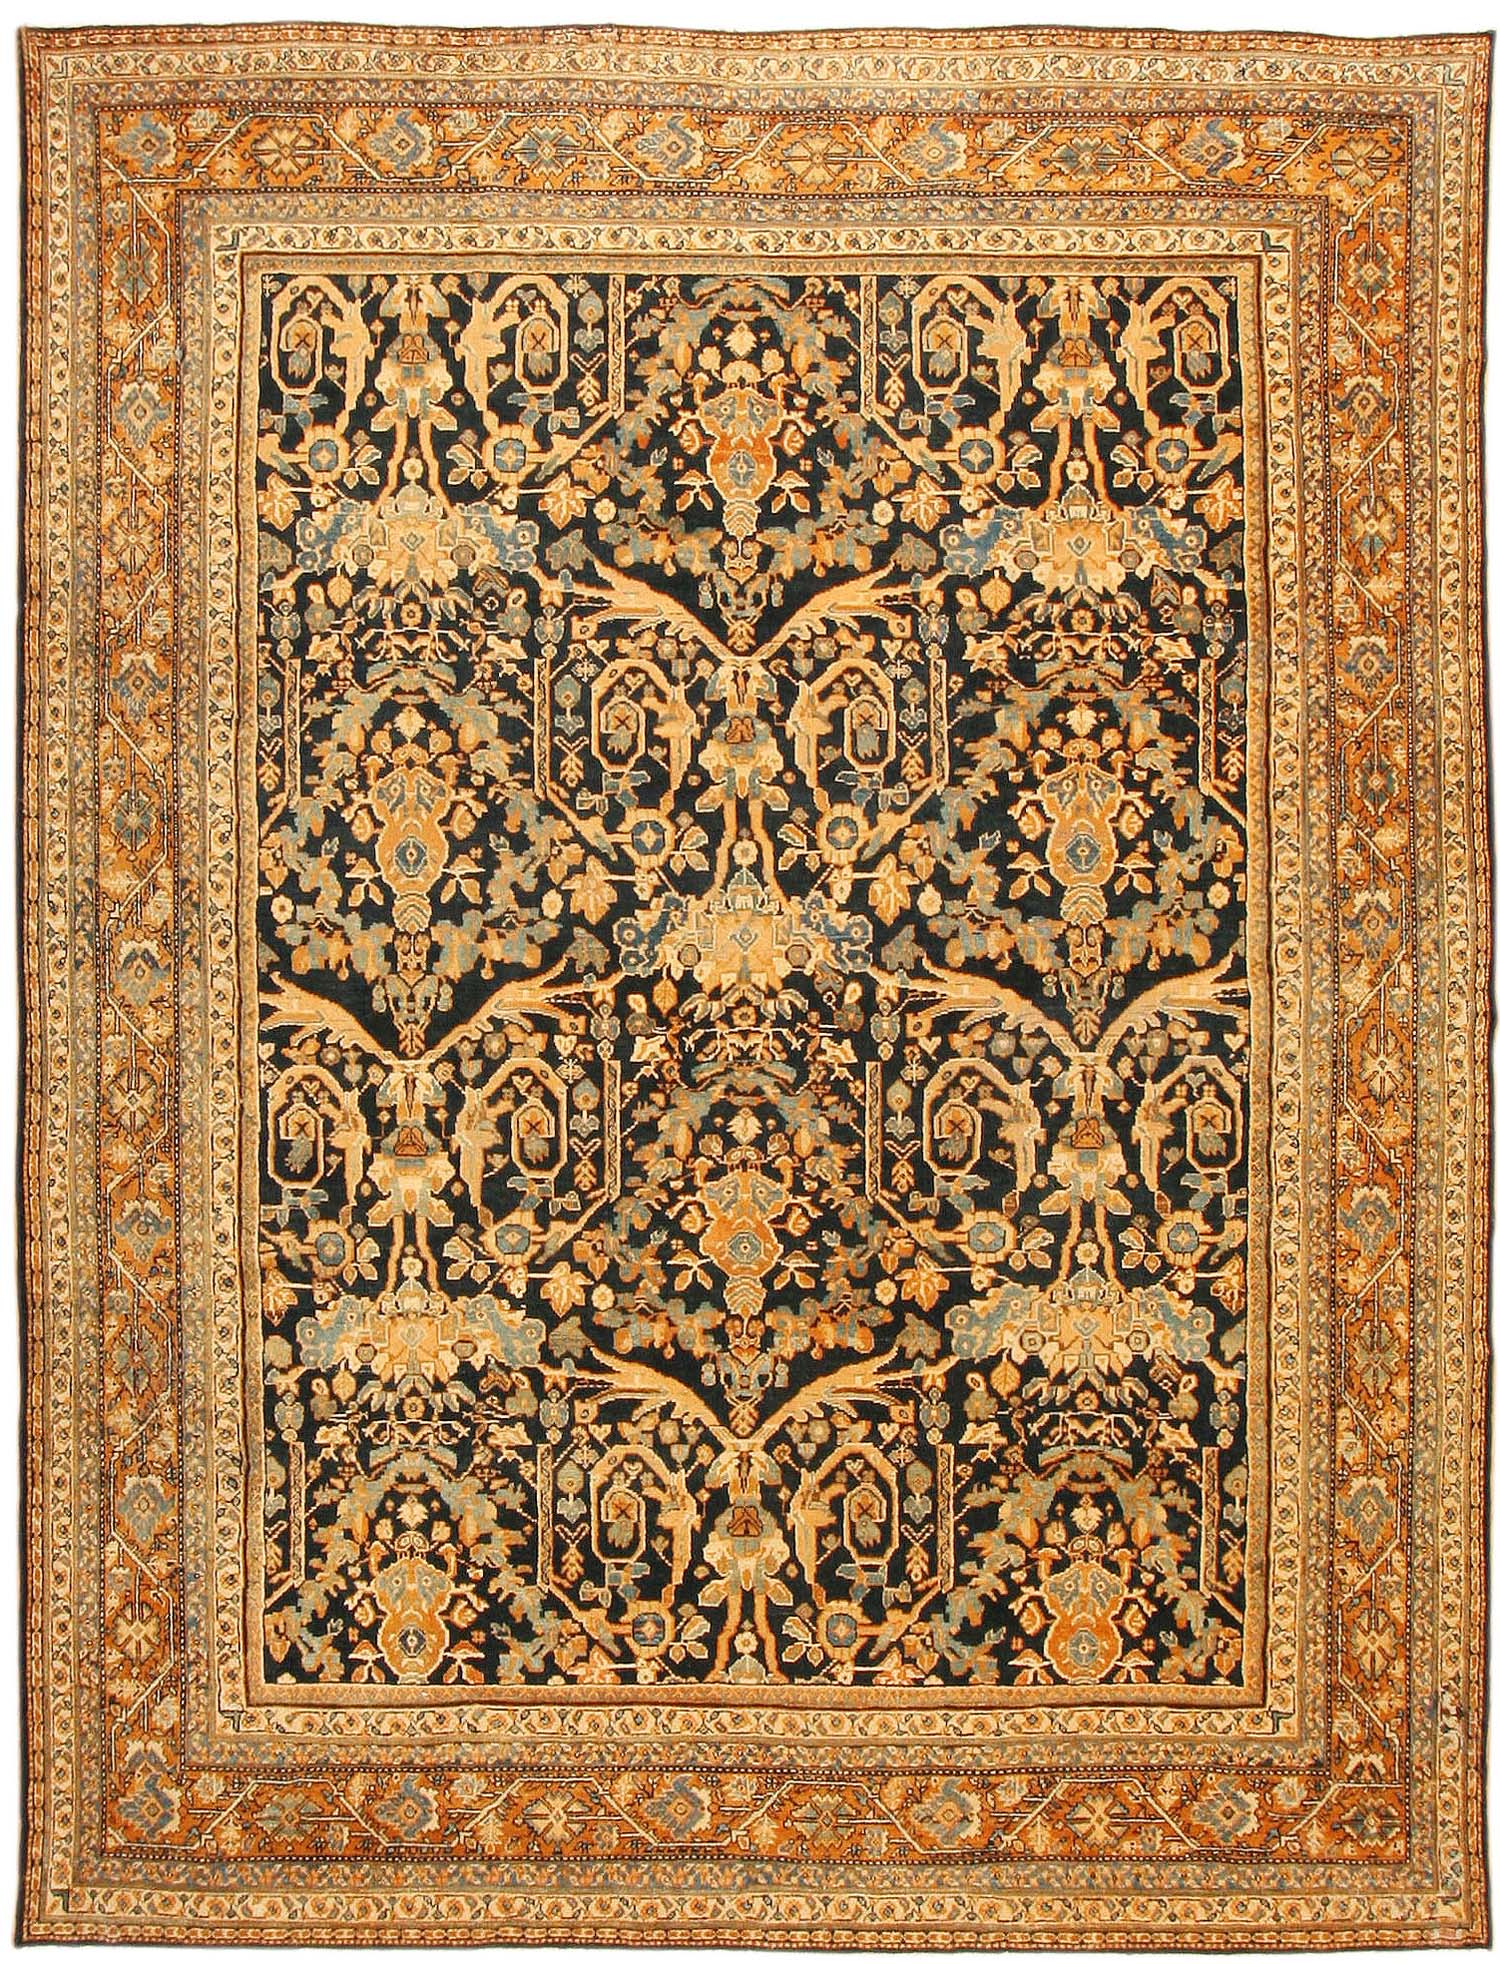 Antiques Com Classifieds Antiques 187 Antique Rugs For